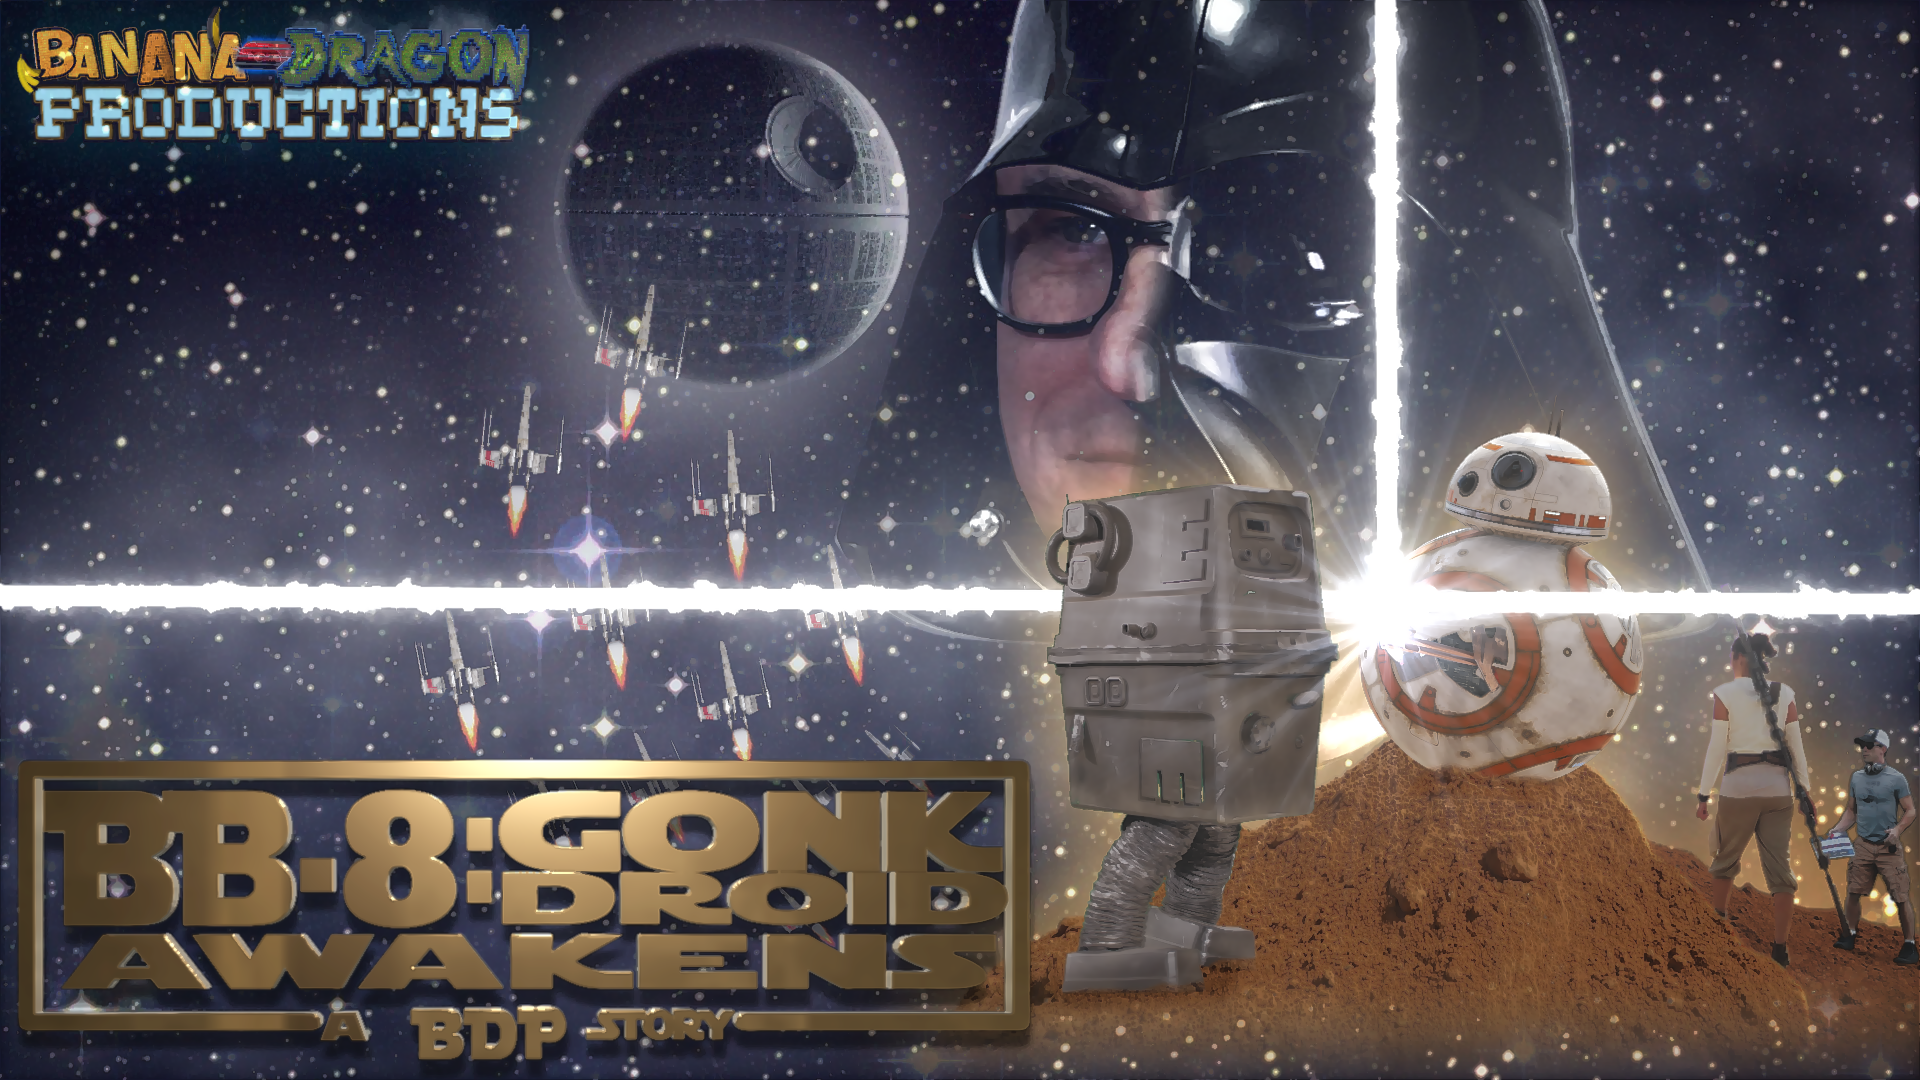 BB-8: Gonk Droid Awakens! / OFFICIAL POSTER_Banana-DragonProd